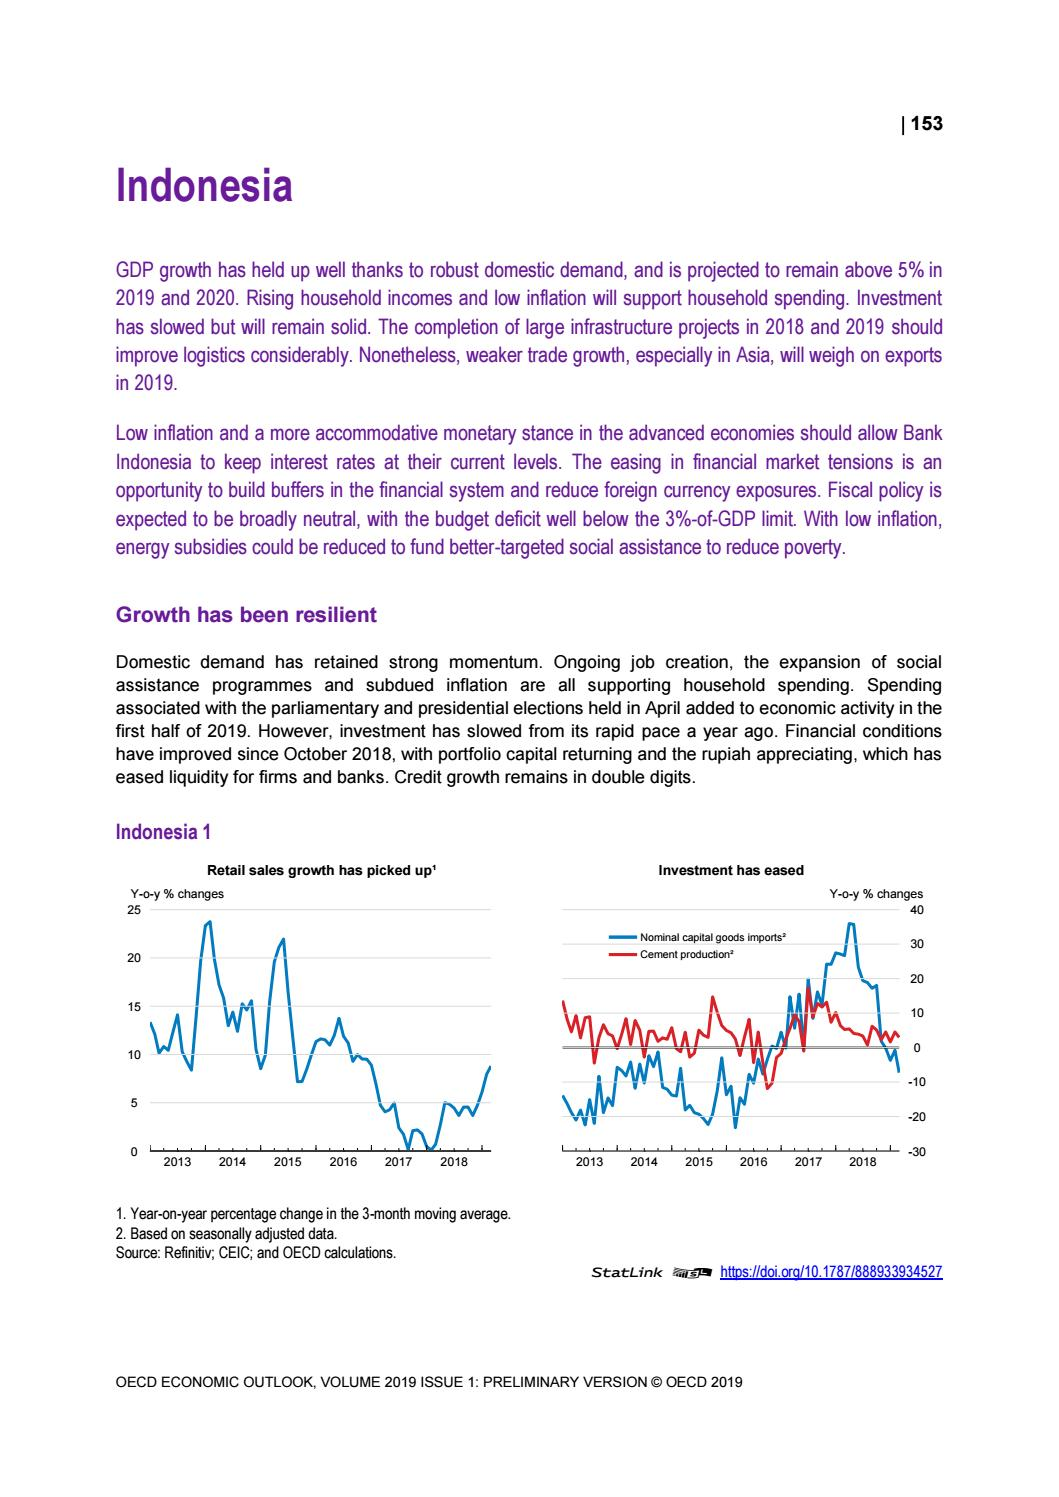 OECD Economic Outlook May 2019, Country Notes: Indonesia by